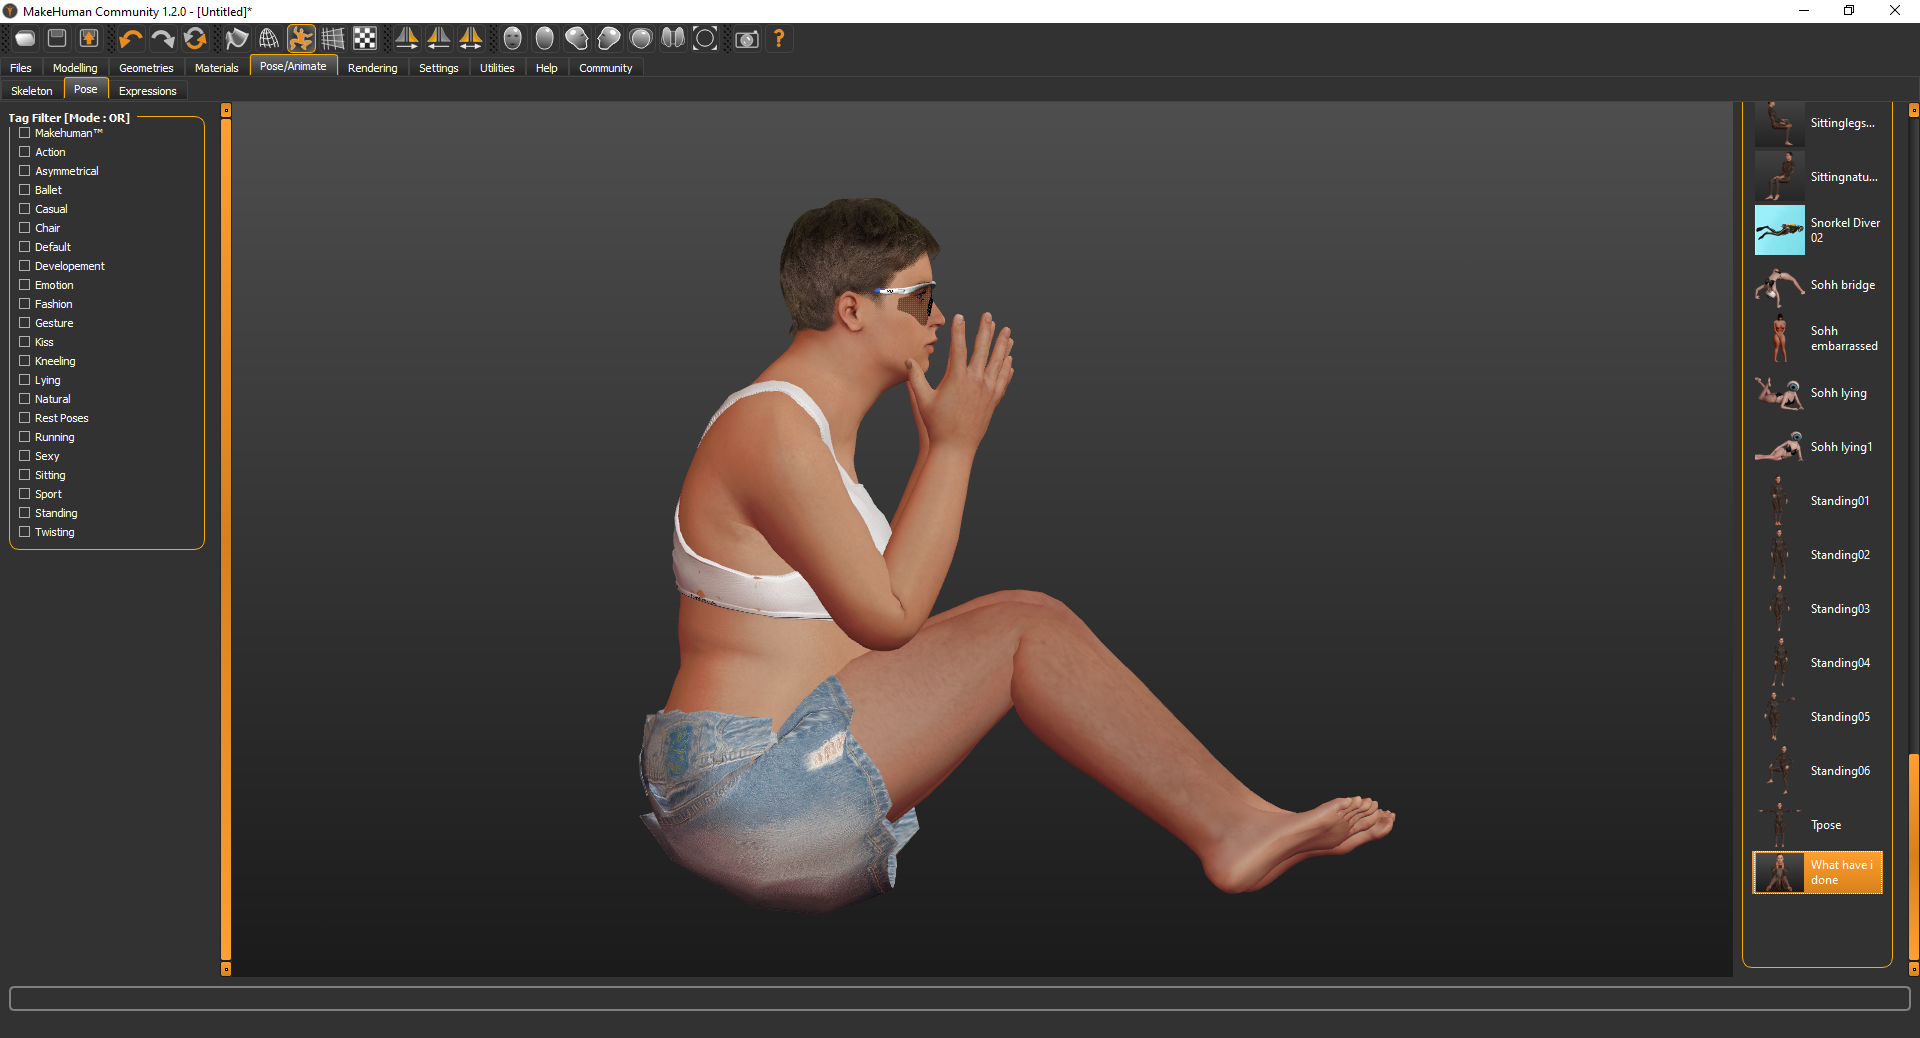 A computer-generated image of a human figure sitting in profile with legs stretched out. They have short brown hair and are wearing a white top and denim shorts